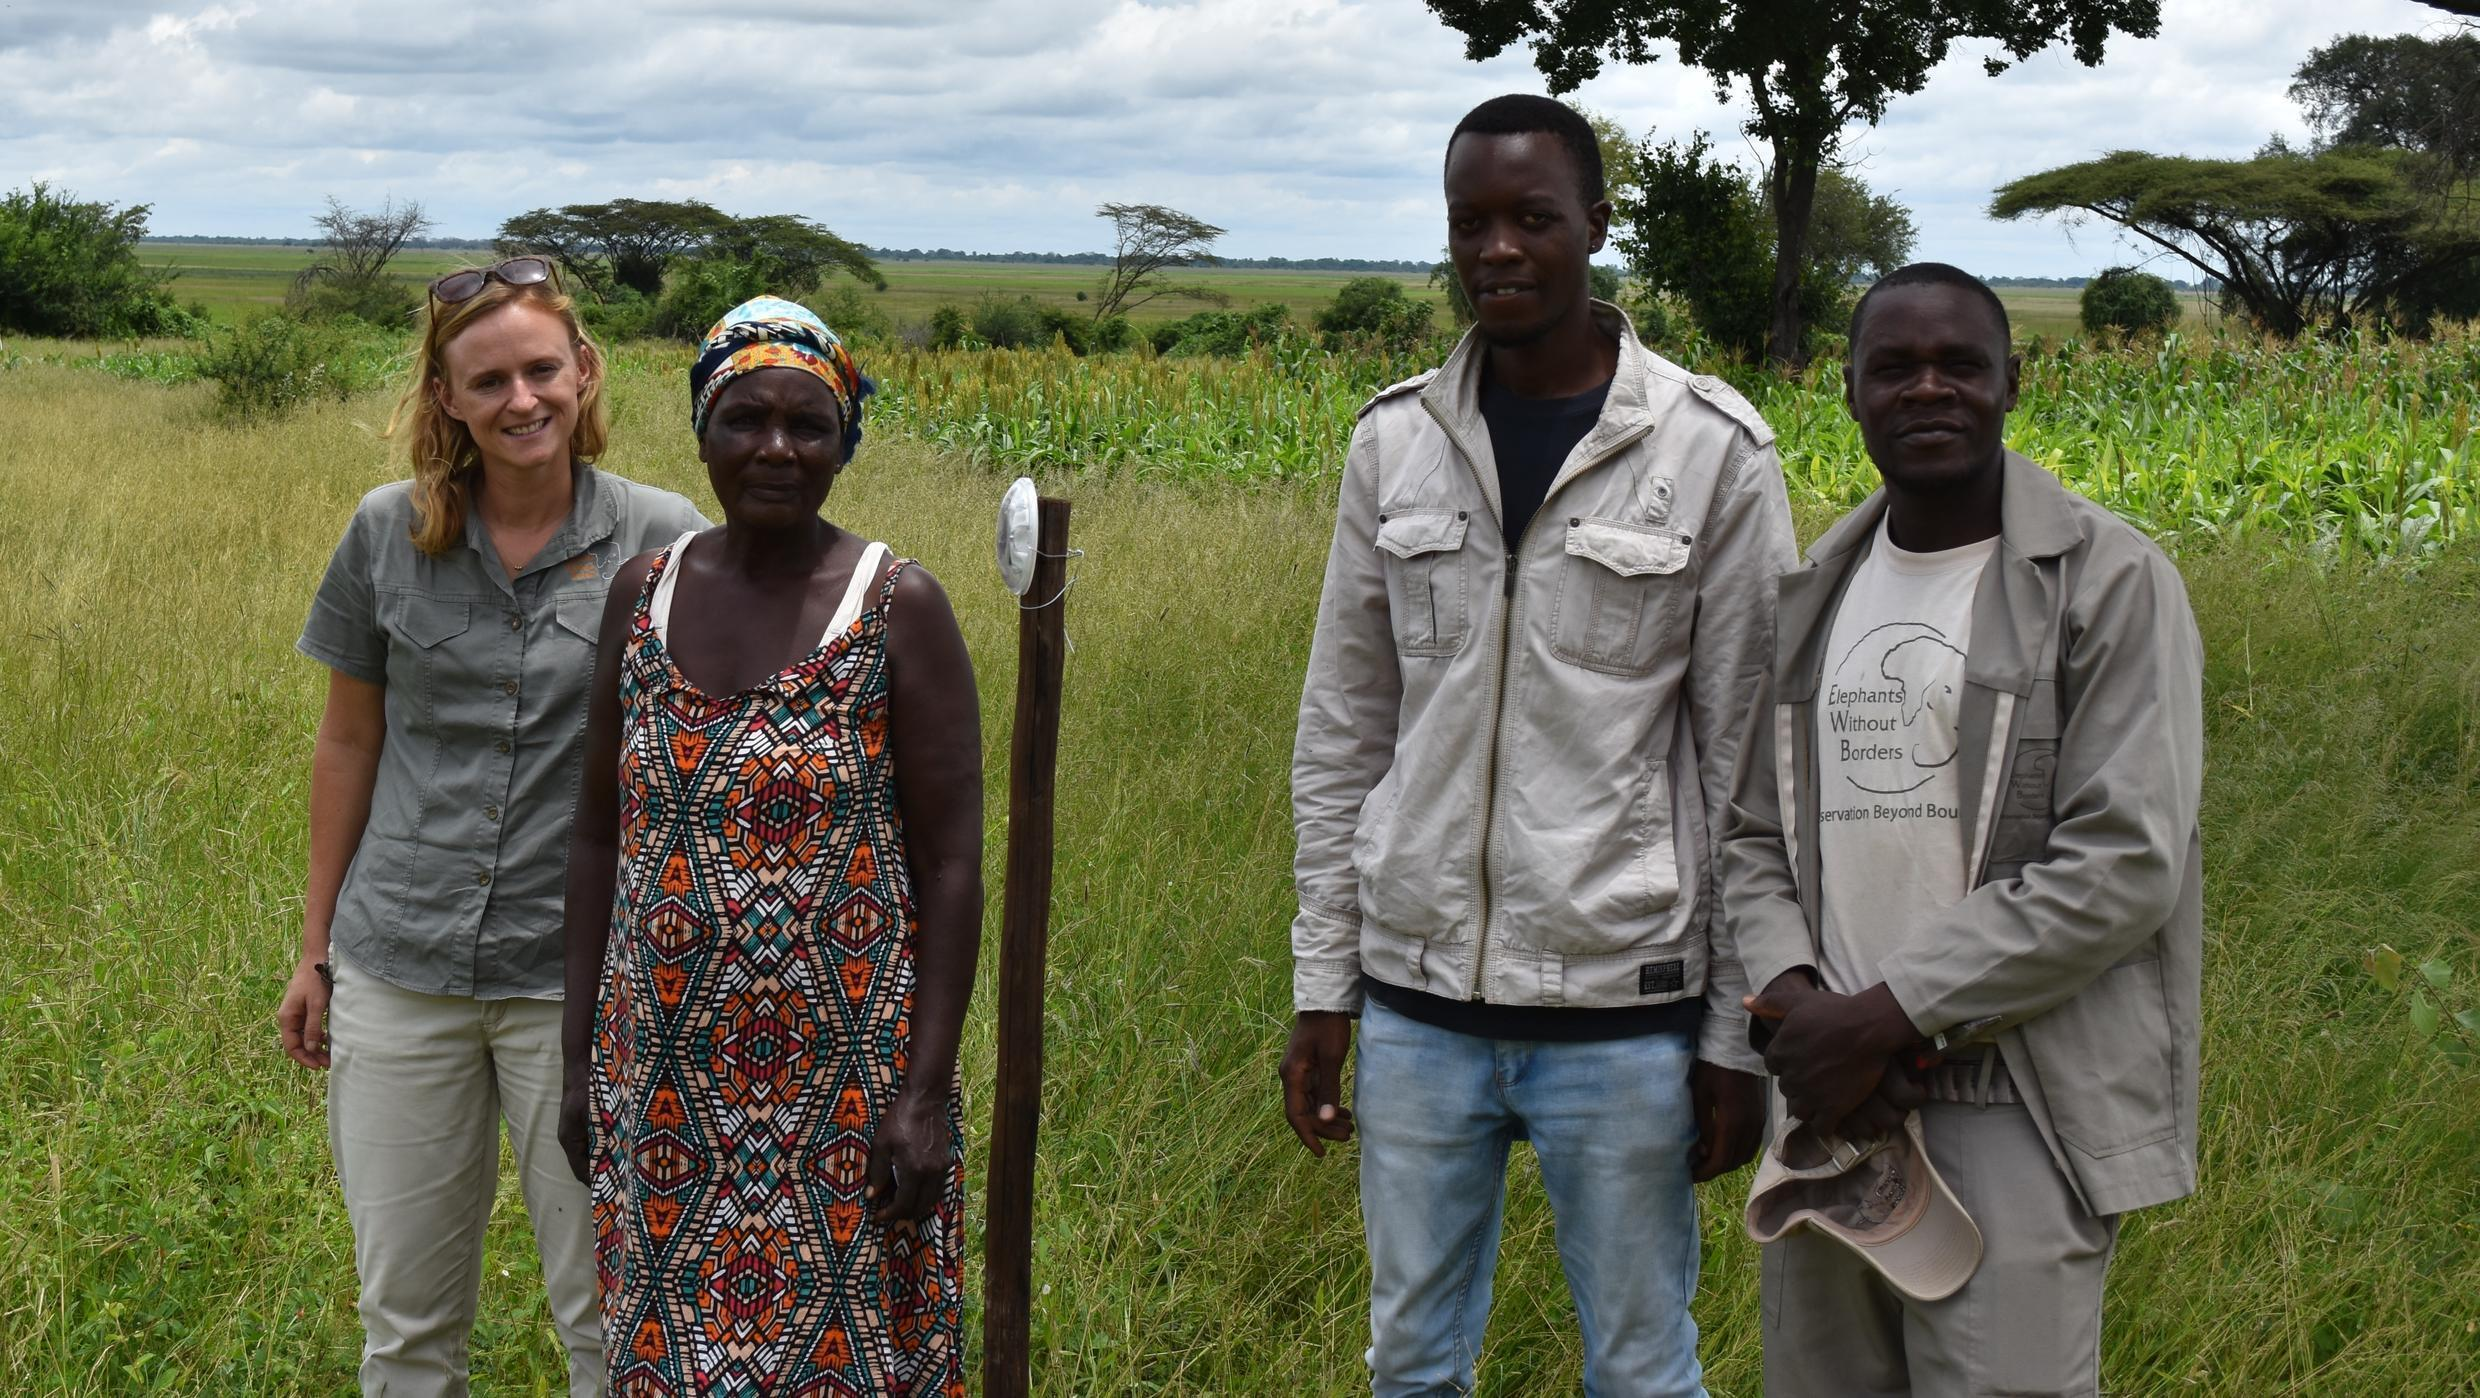 Research coordinator Tempe Adams (left) and members of the Elephants Without Borders co-existence team pose with a farmer whose maize field is protected by a strobe light barrier.